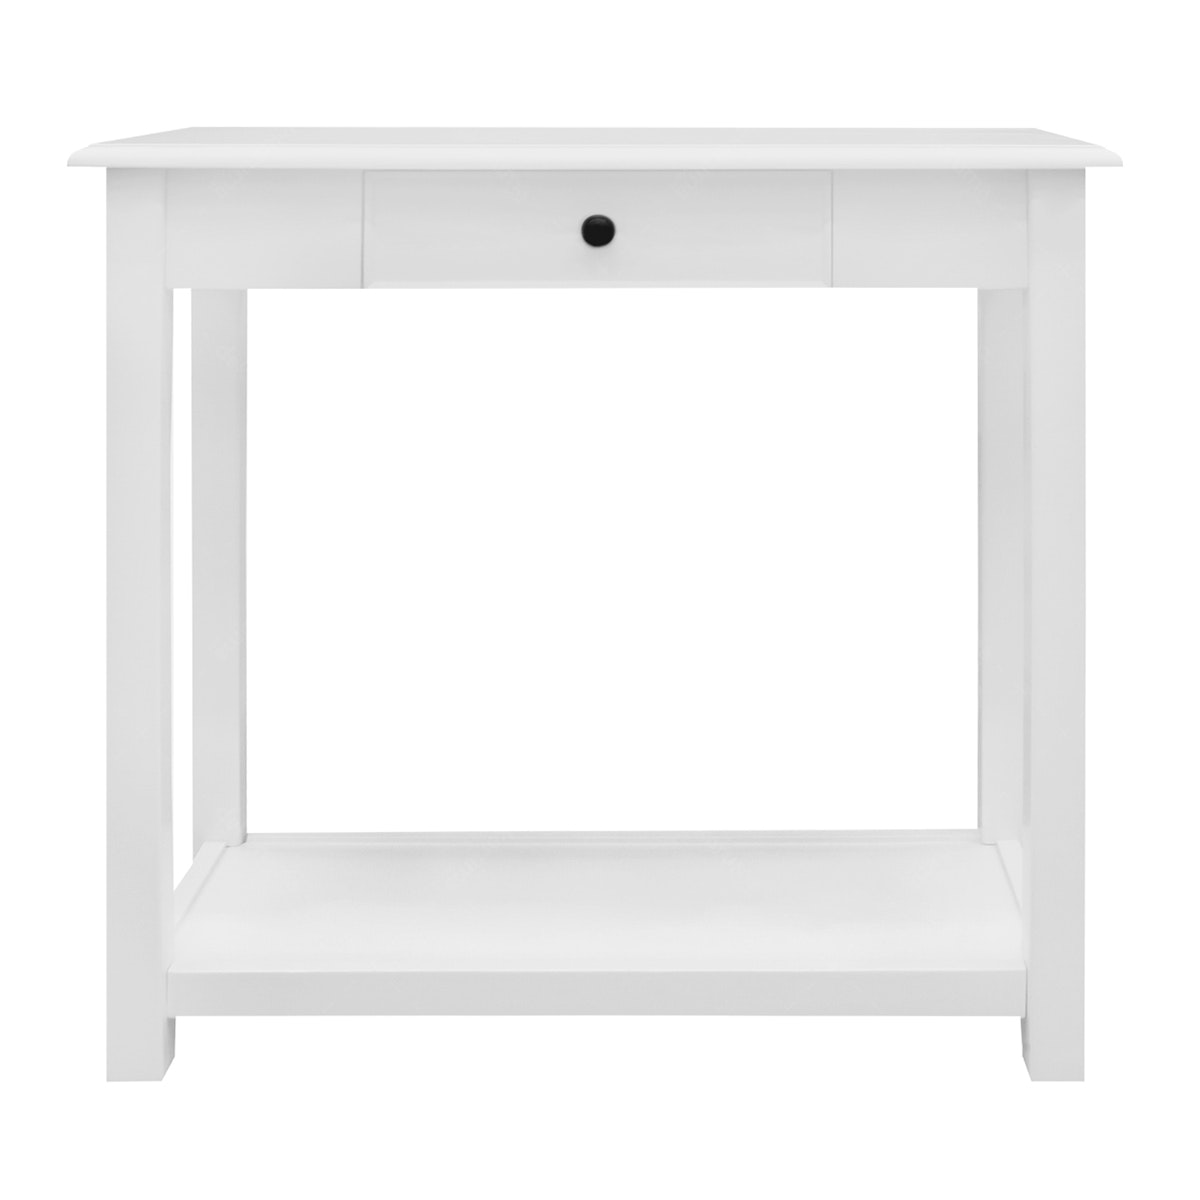 JYSK Console Table JYLLANDLKN-0280X36X76cm White